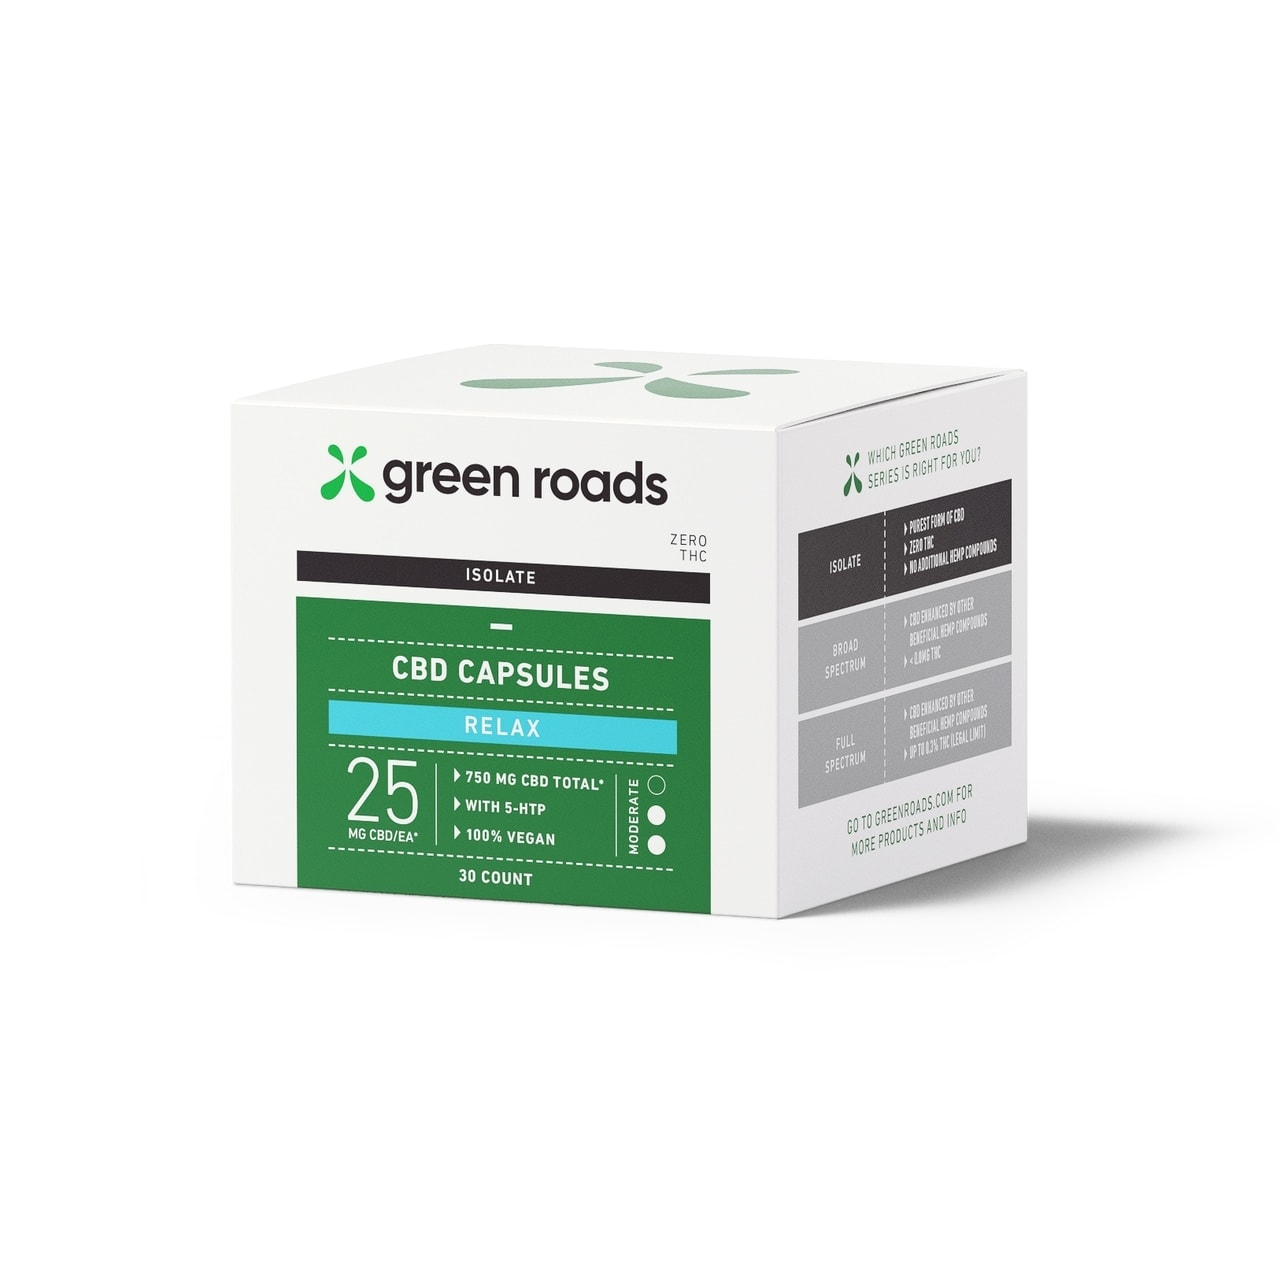 Green Roads, CBD Relax Capsules, Isolate THC-Free, 30-Count, 750mg of CBD3